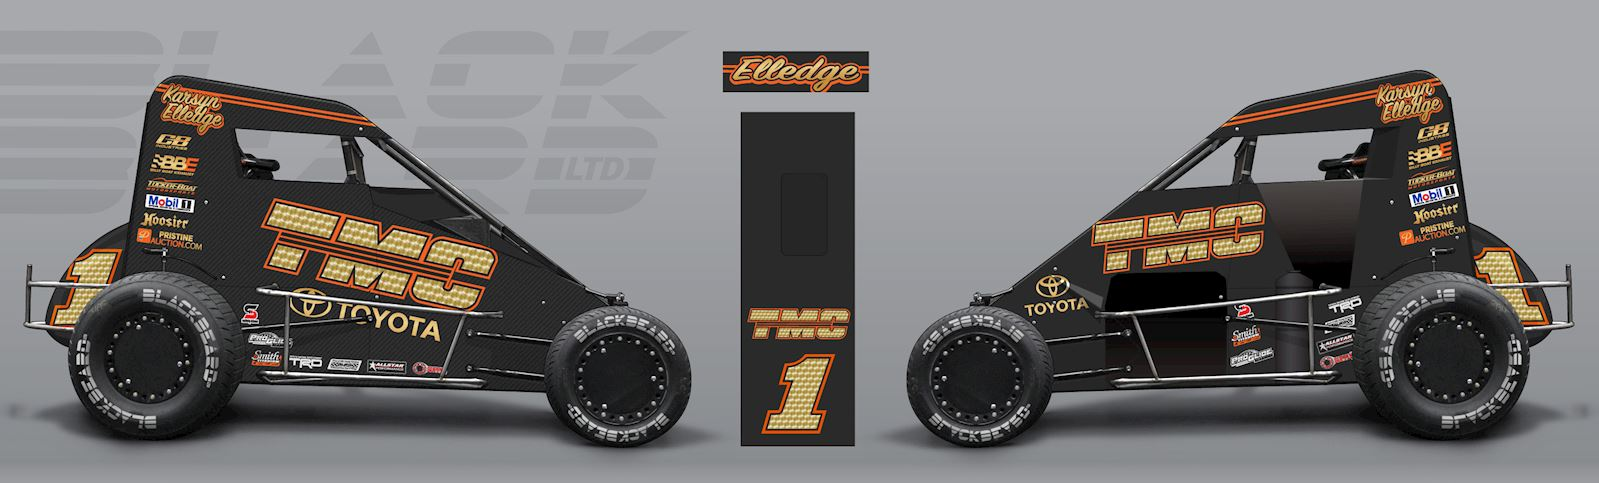 TMC TO ACT AS PRIMARY PARTNER FOR KARSYN ELLEDGE IN MULTIPLE USAC MIDGET SERIES RACES WITH TUCKER-BOAT MOTORSPORTS